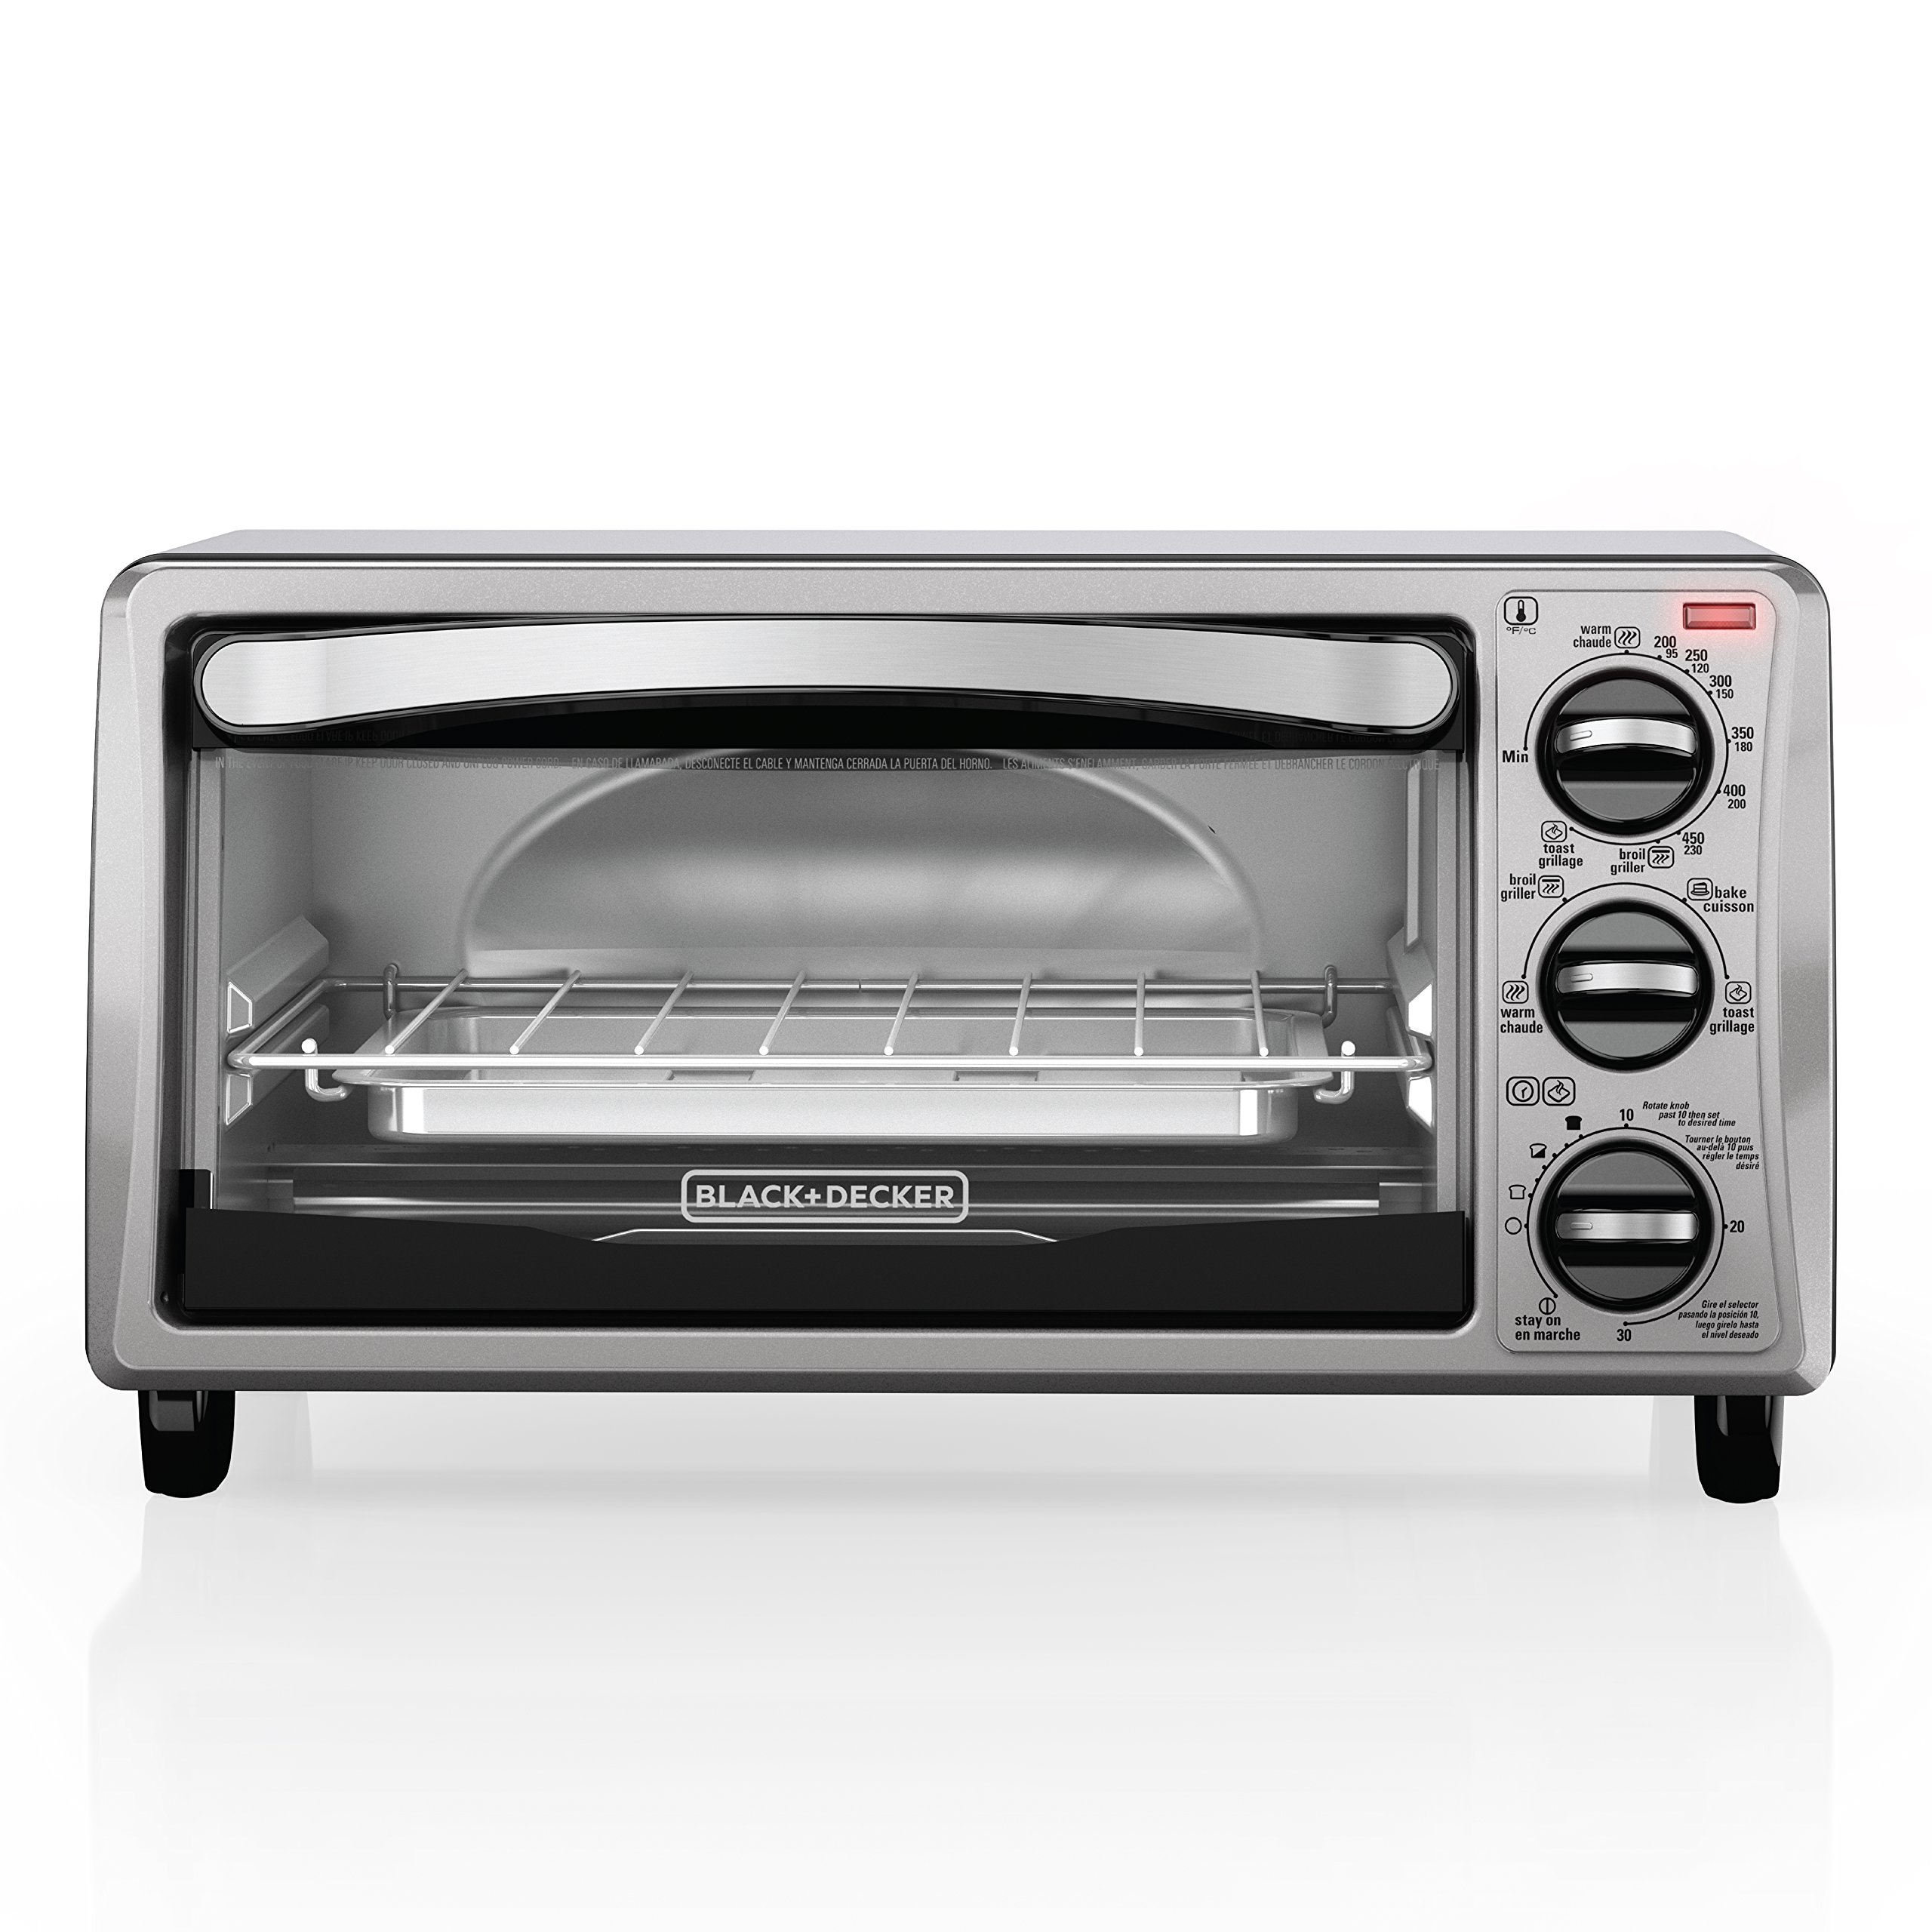 BLACK+DECKER TO1313SBD Decker To1313Sbd 4Slice Toaster Oven, Black by BLACK+DECKER (Image #1)